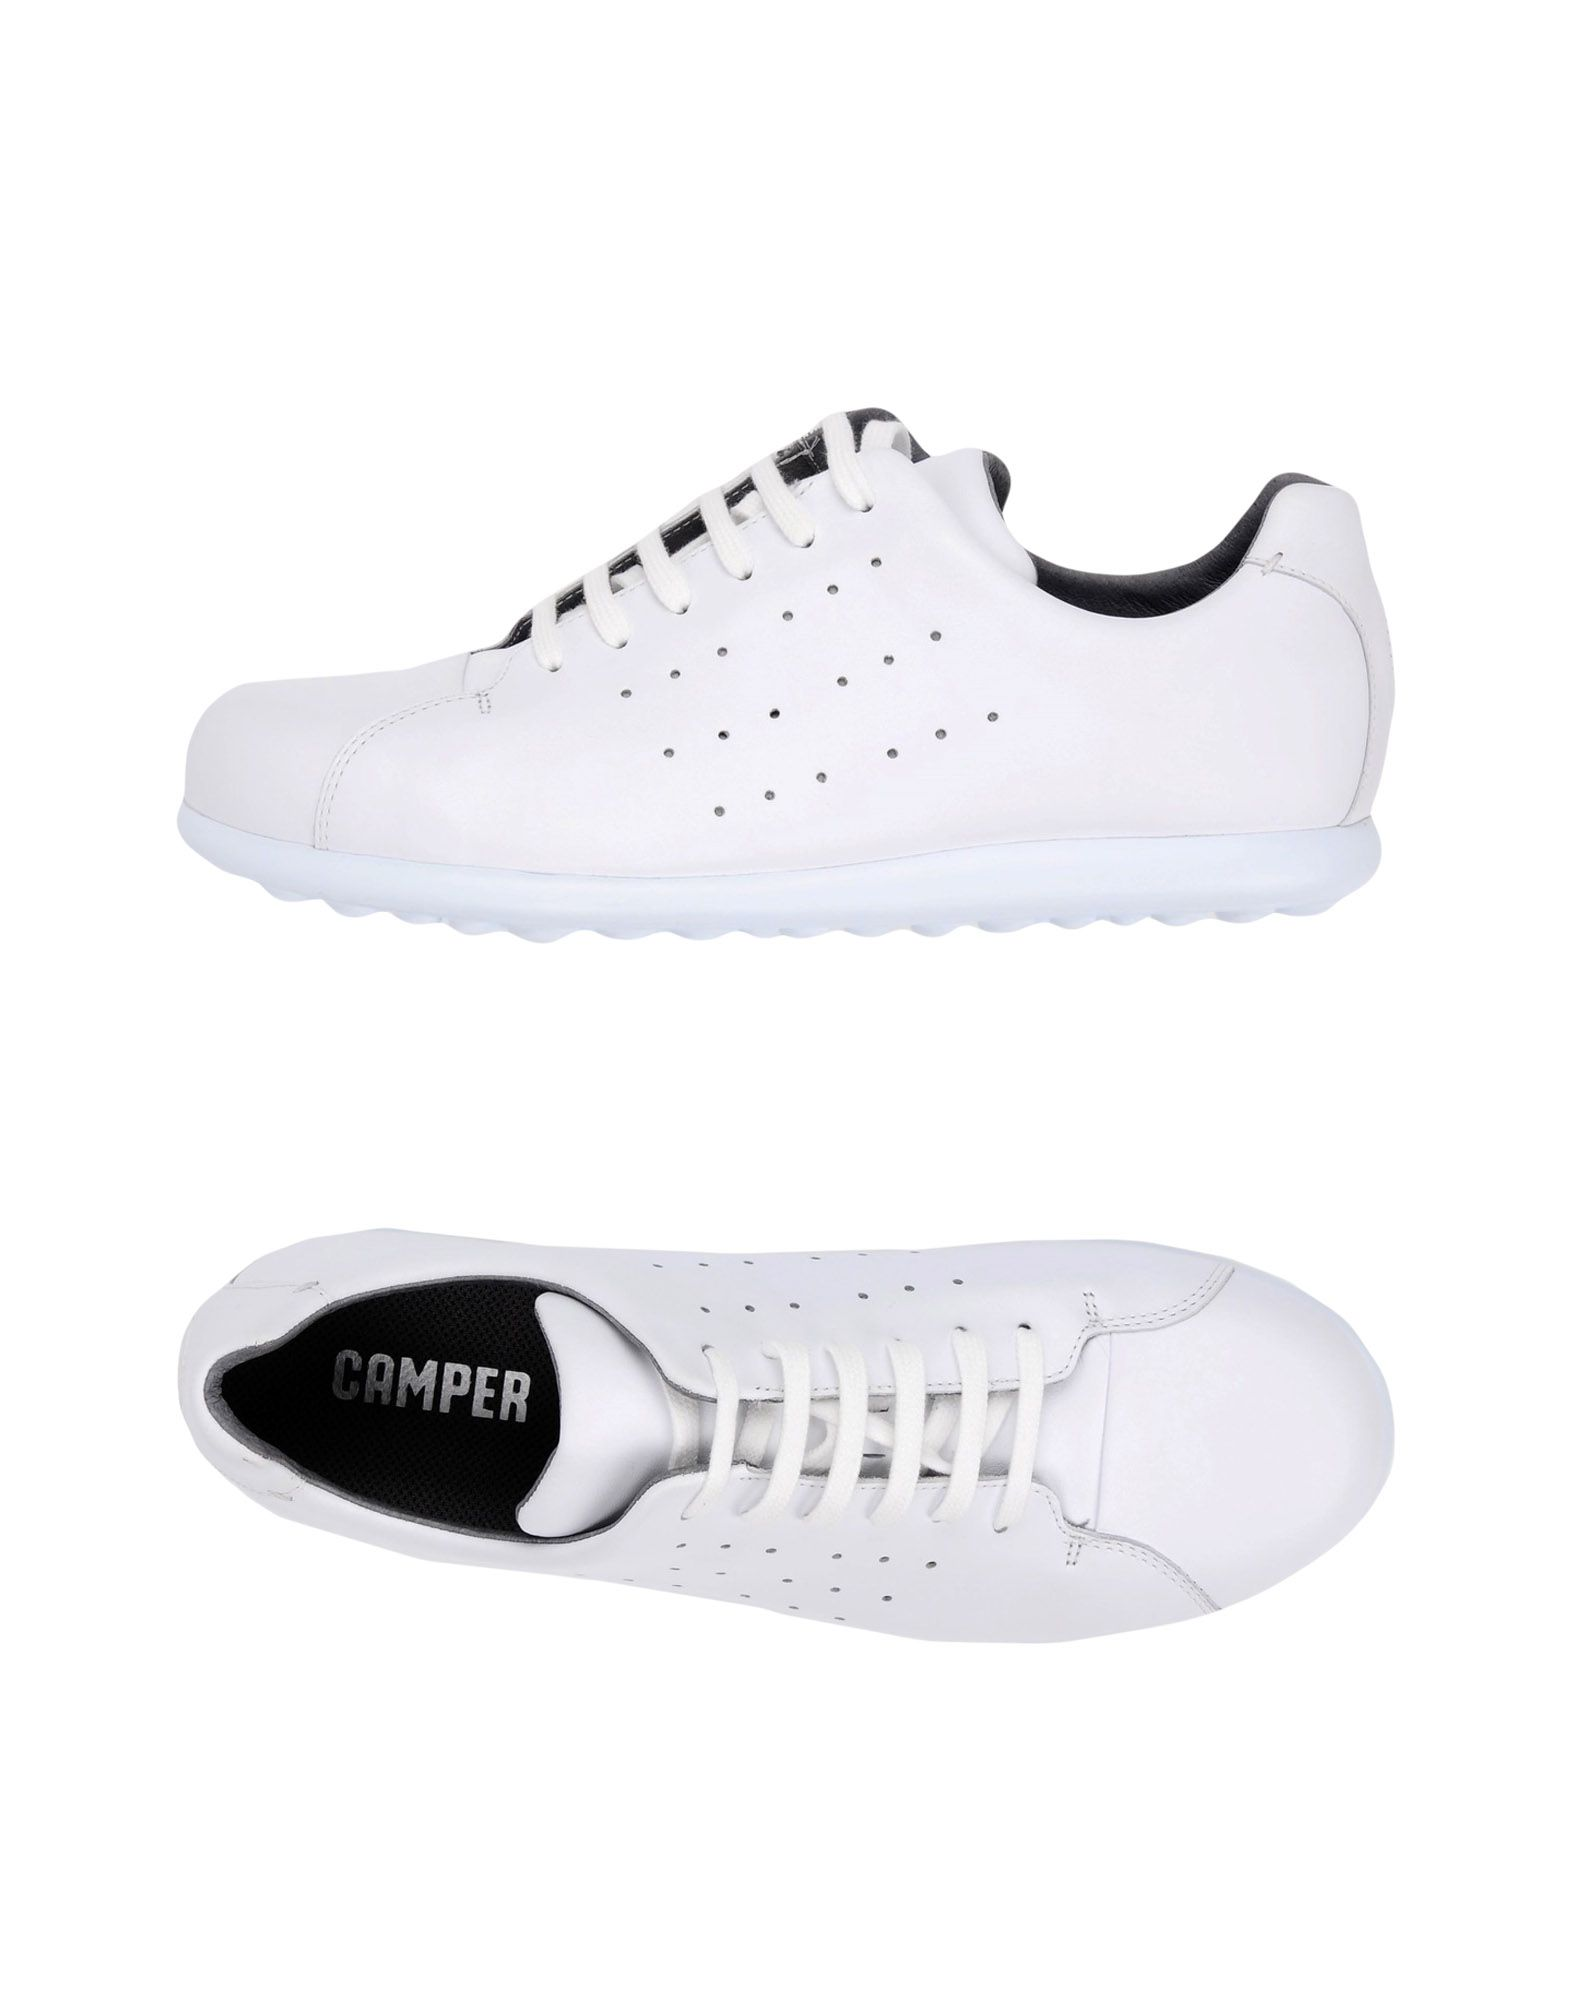 Camper Pelotas Xl - Sneakers Sneakers - Men Camper Sneakers - online on  Australia - 11434846LP 1dde04